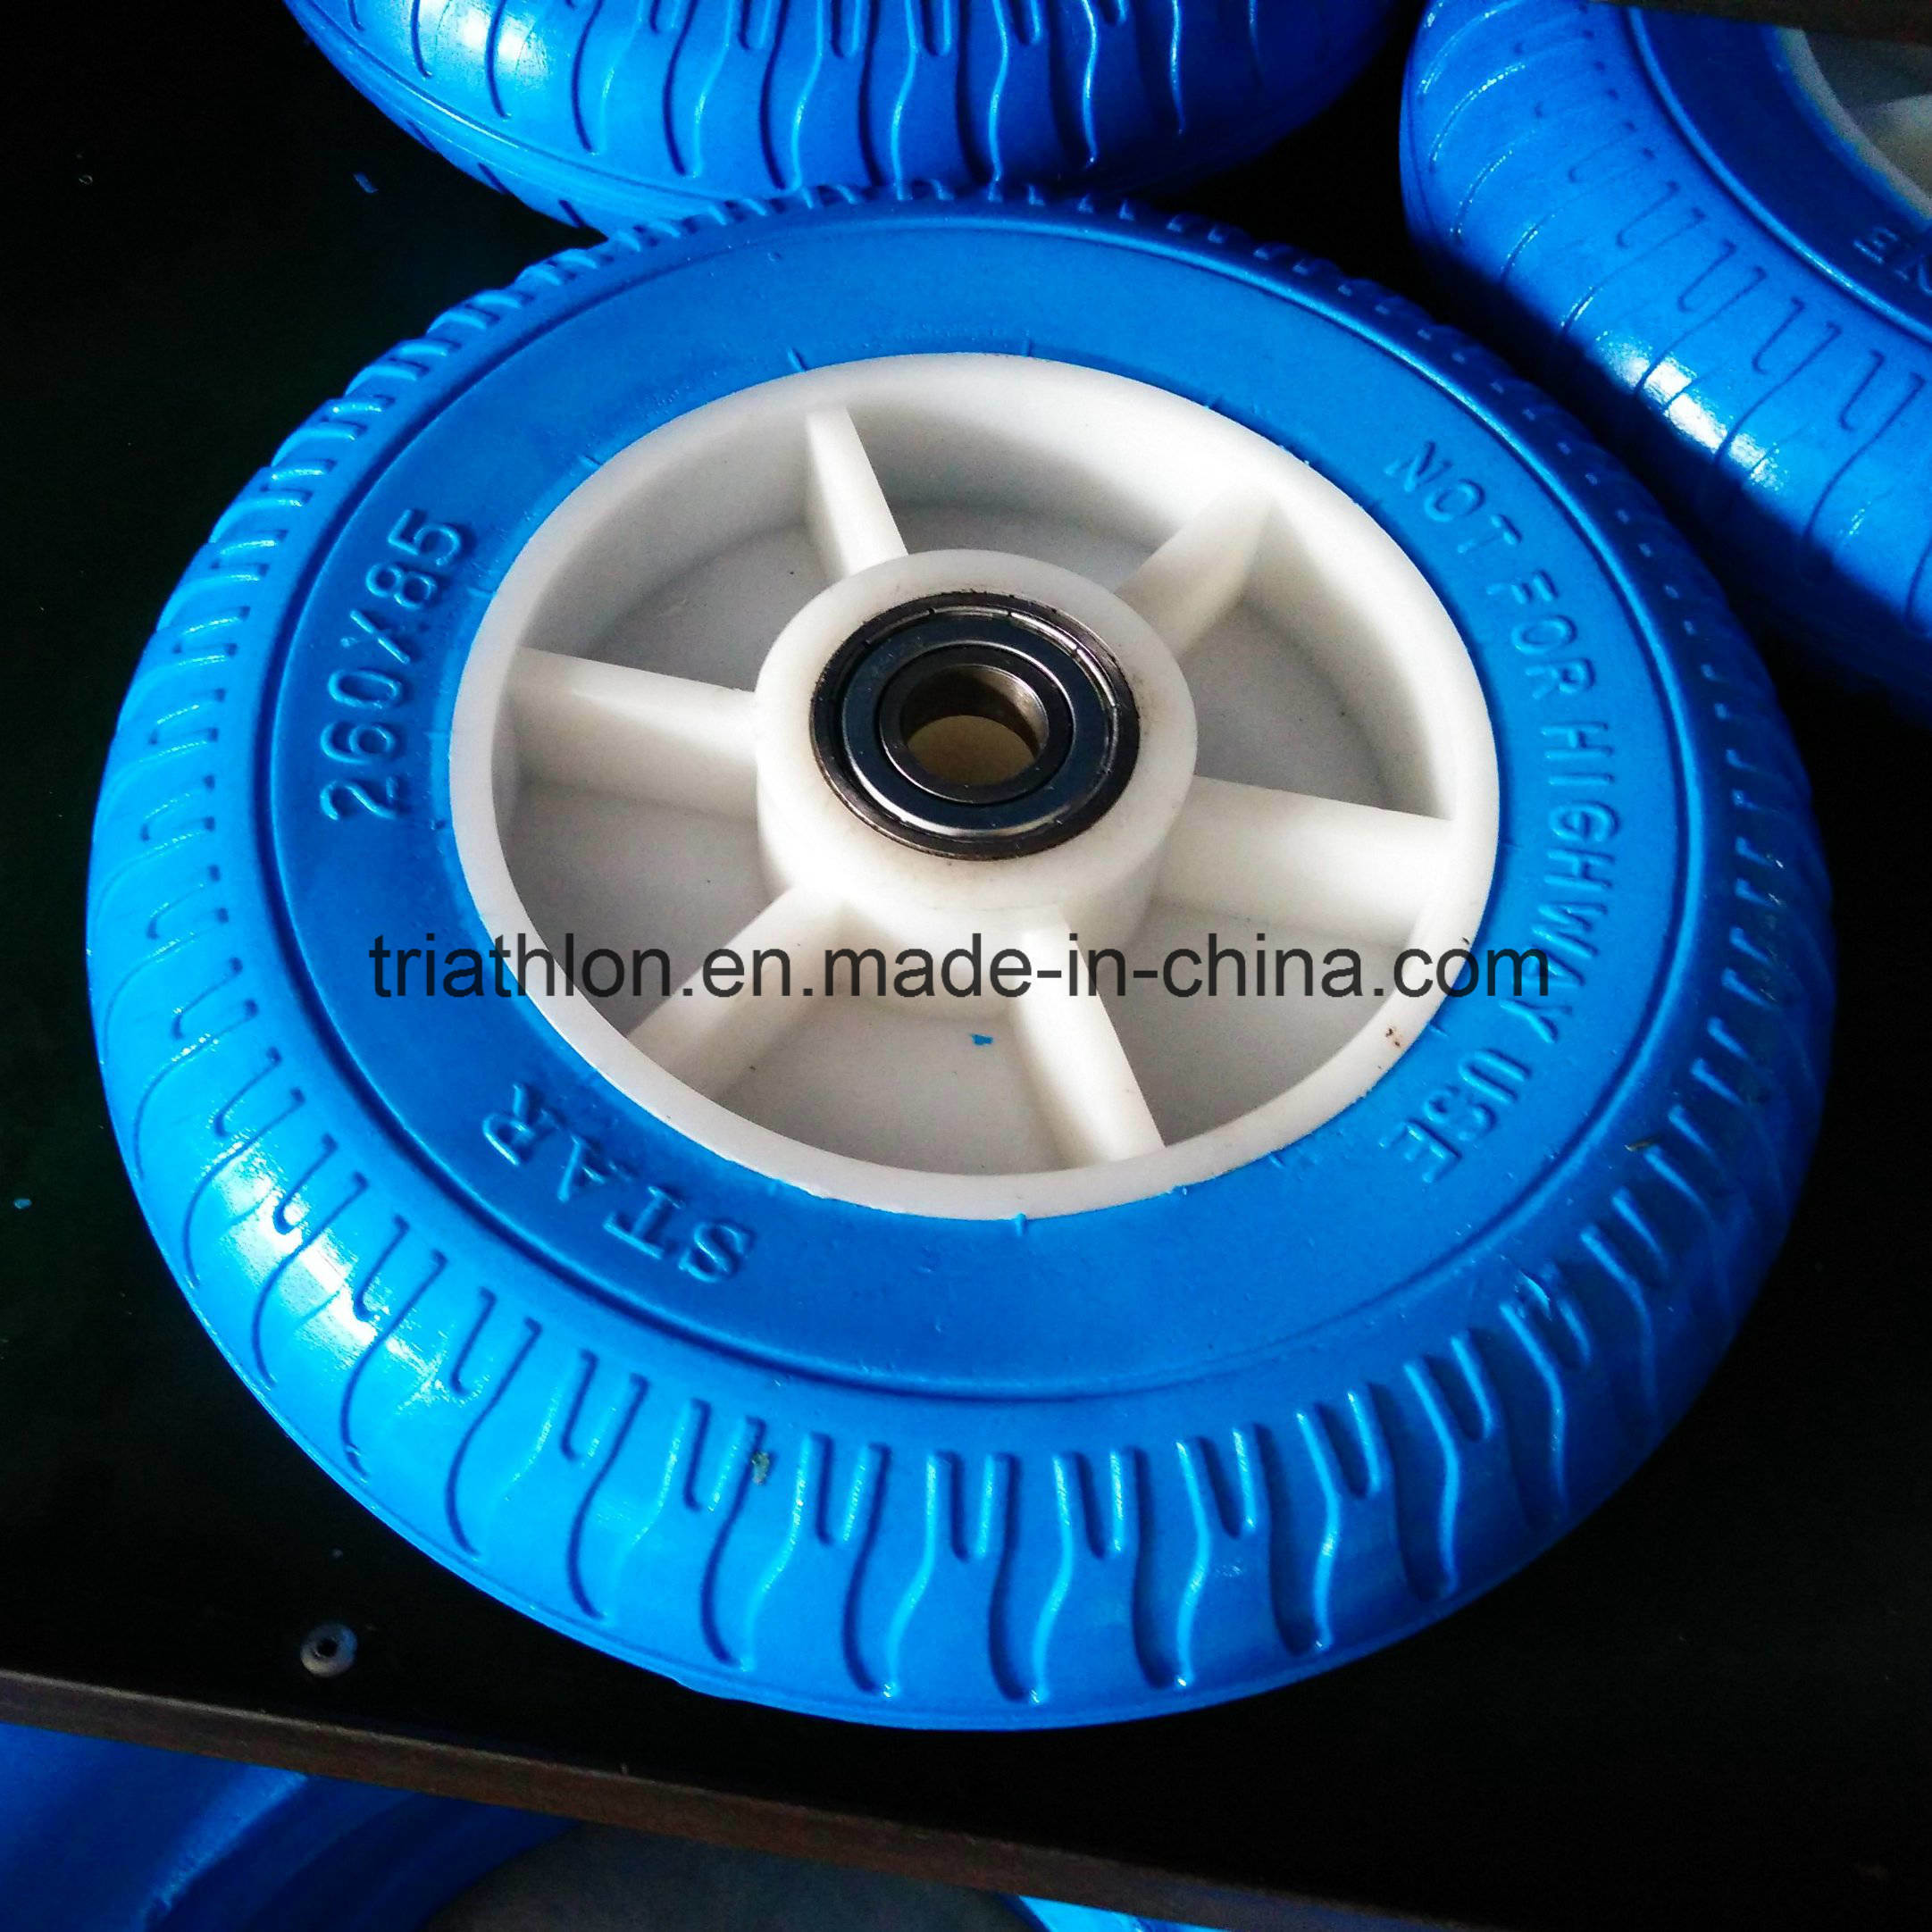 Korea PU Foam Wheel 4.00-8 3.50-8 3.25-8 3.00-8 260X85 2.50-4